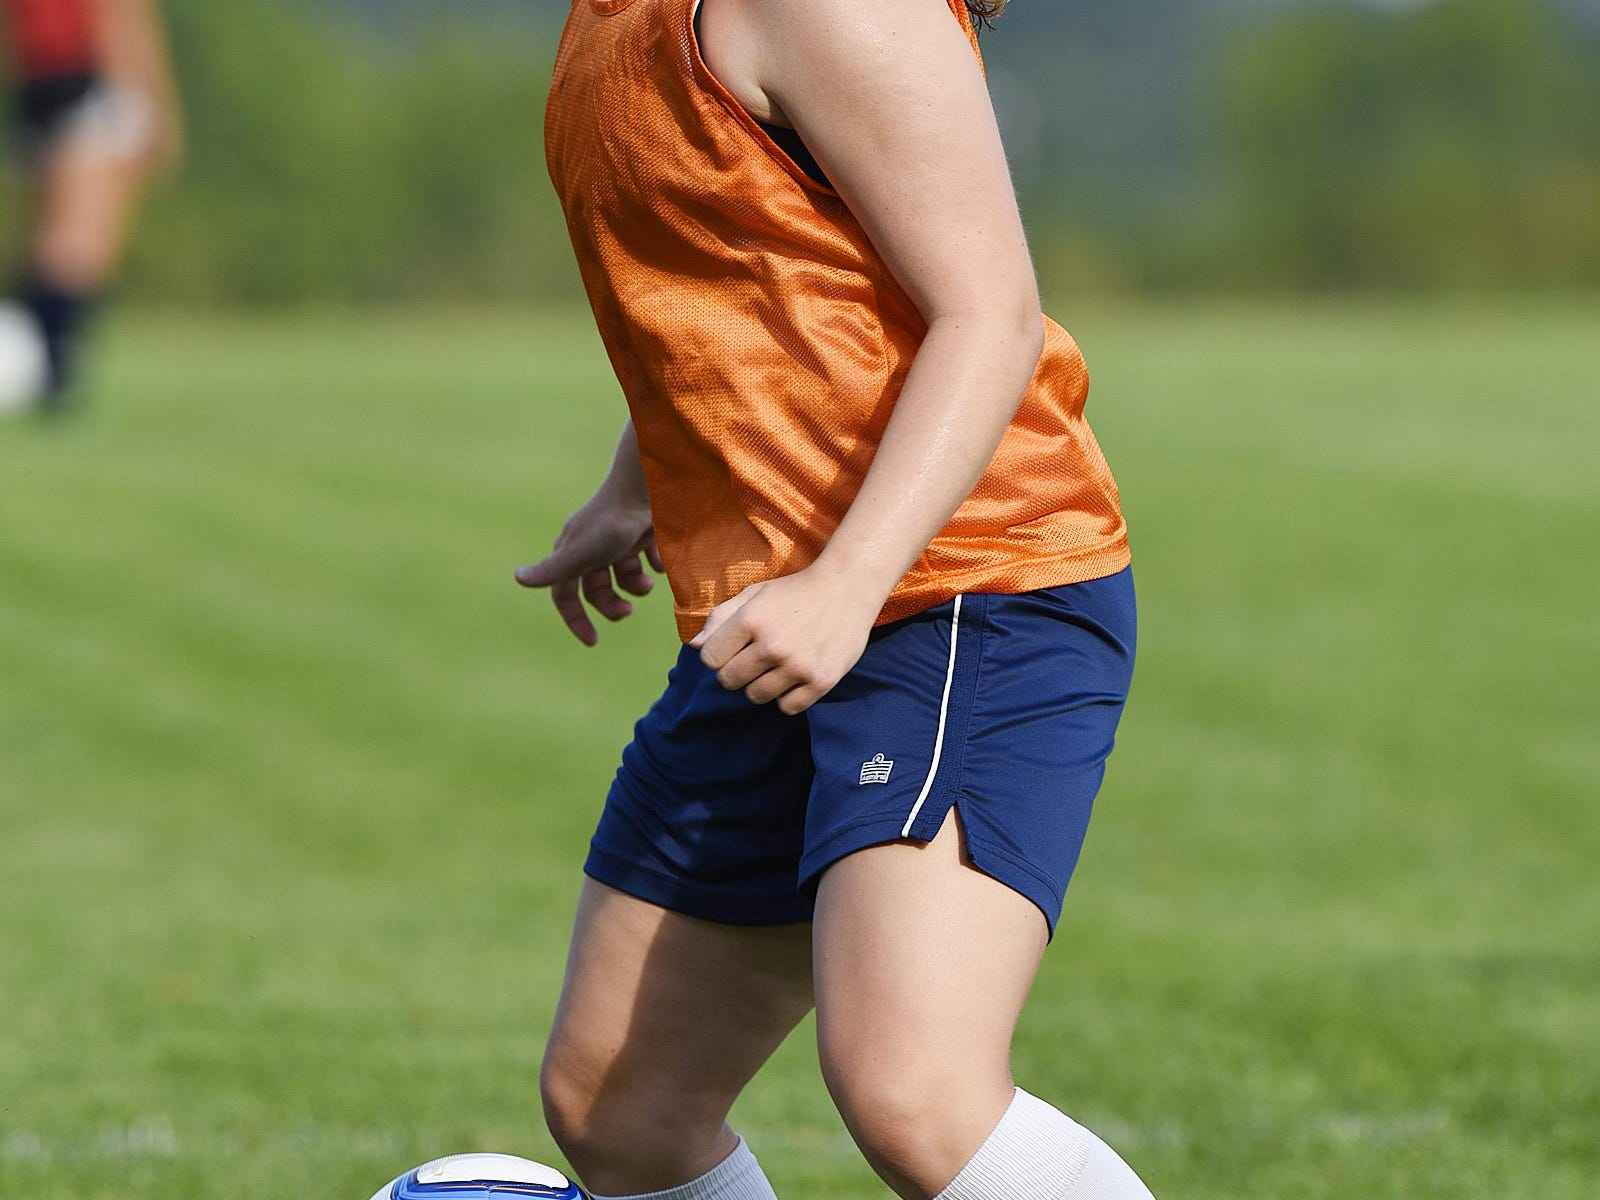 Sartell's Clare Minnerath handles the ball during practice Friday at Sartell High School.